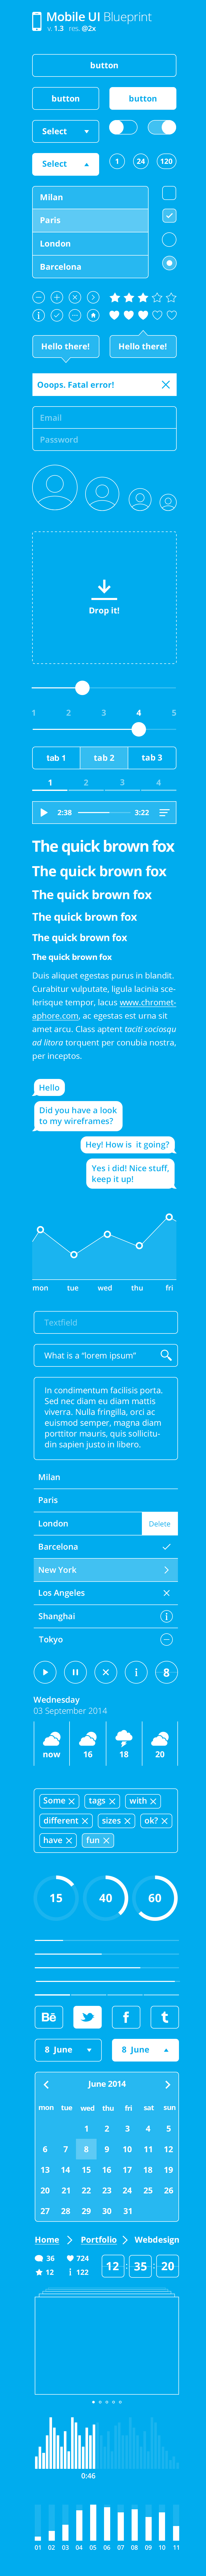 Mobile ui blueprint kit bypeople complete mobile ui blueprint with a wide array of elements in outlined design including diverse buttons charts dialog boxes text and calendars malvernweather Image collections